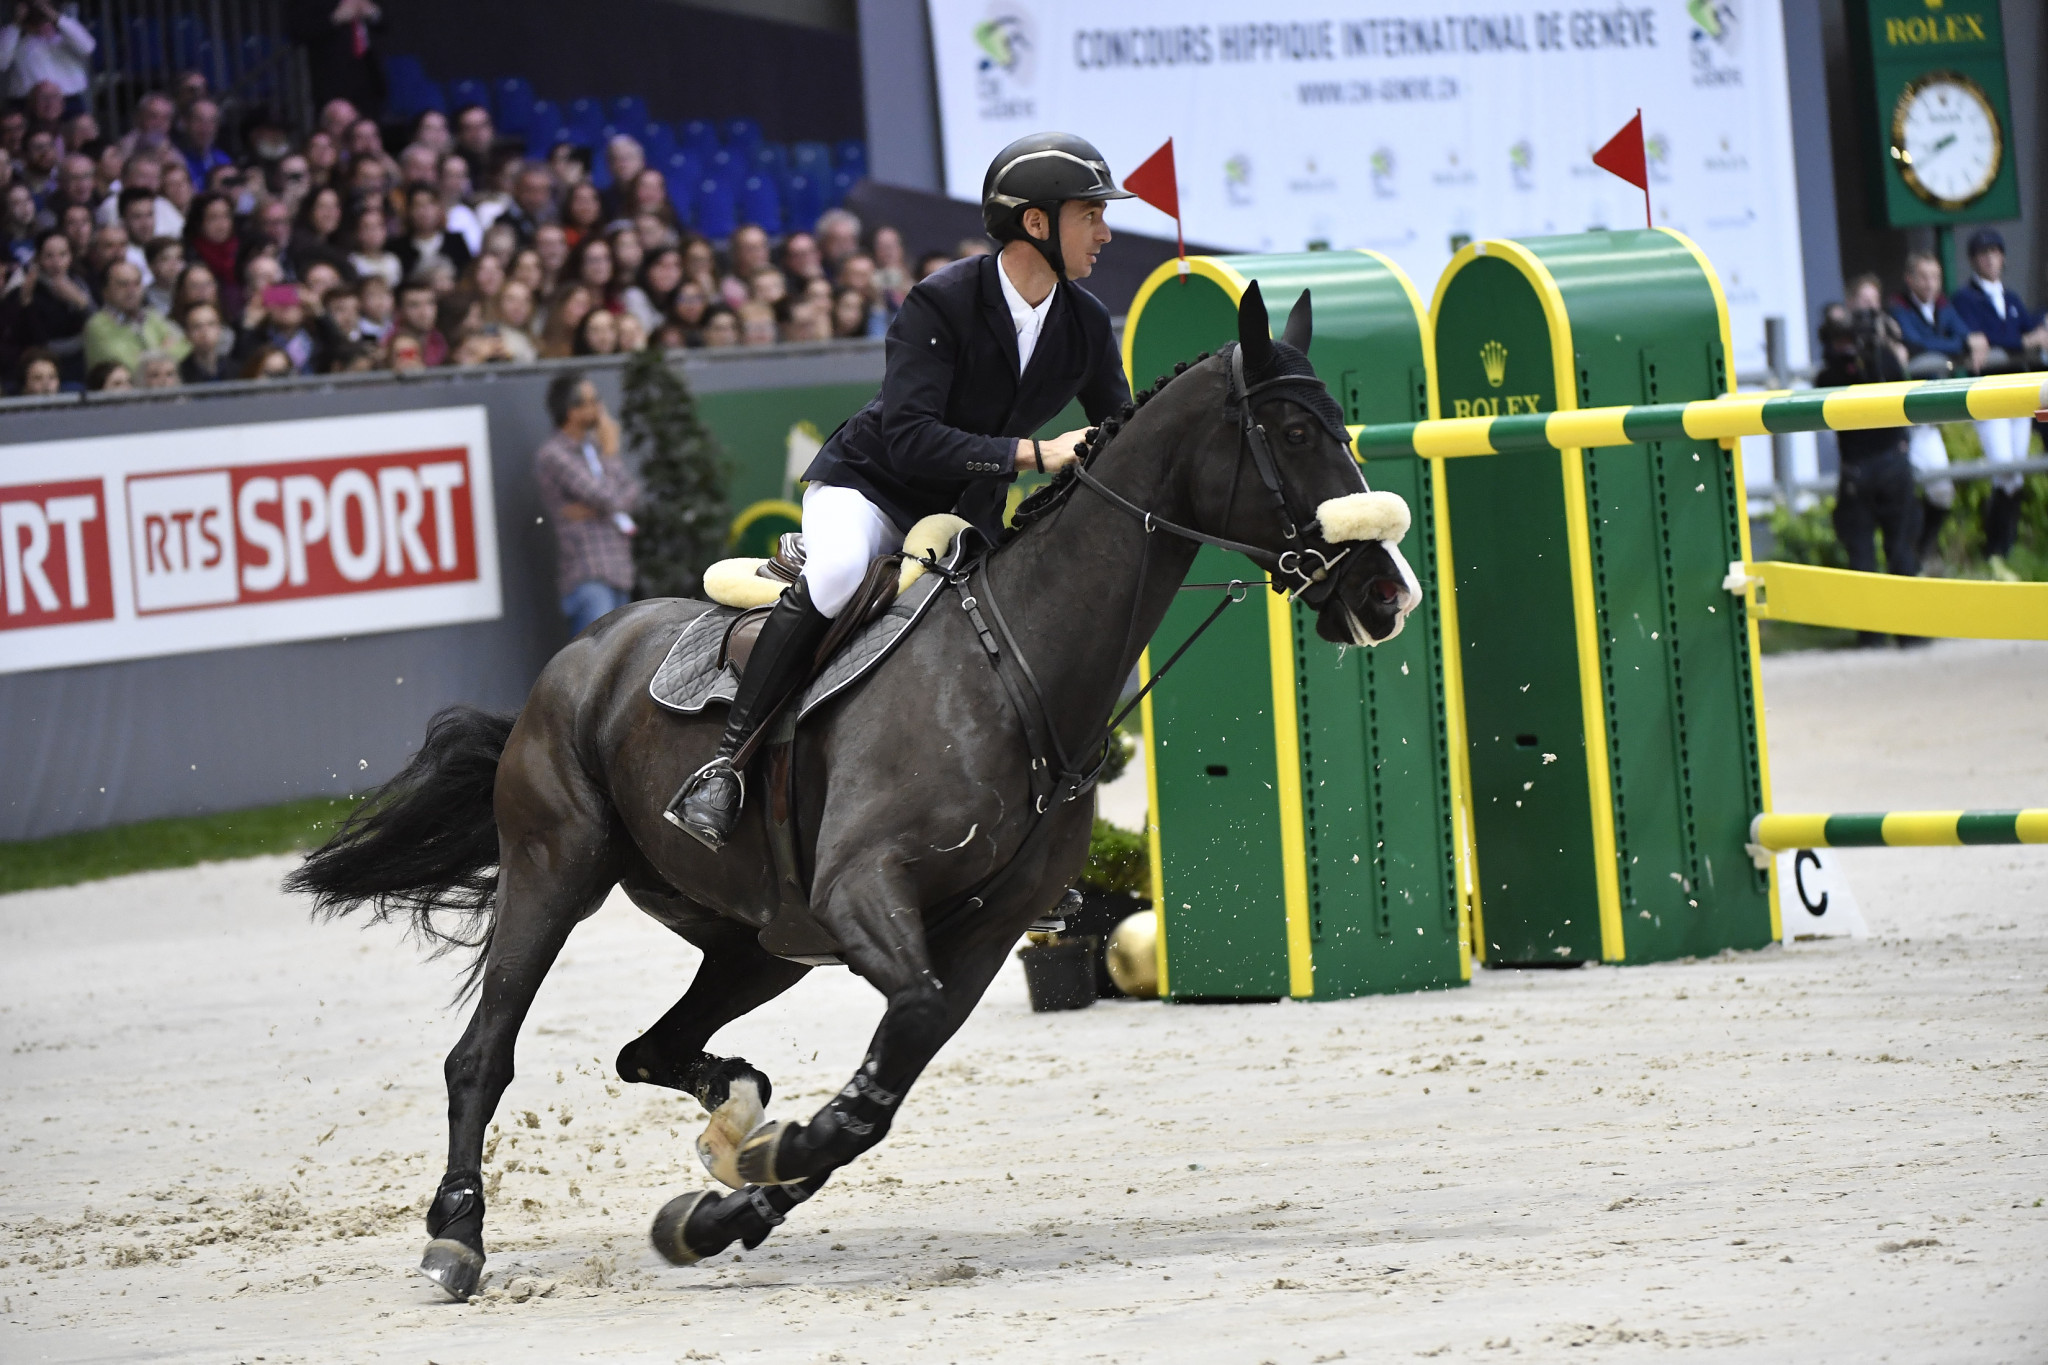 Switzerland's Steve Guerdat is one of those to have already reached the 40 point mark ©Getty Images